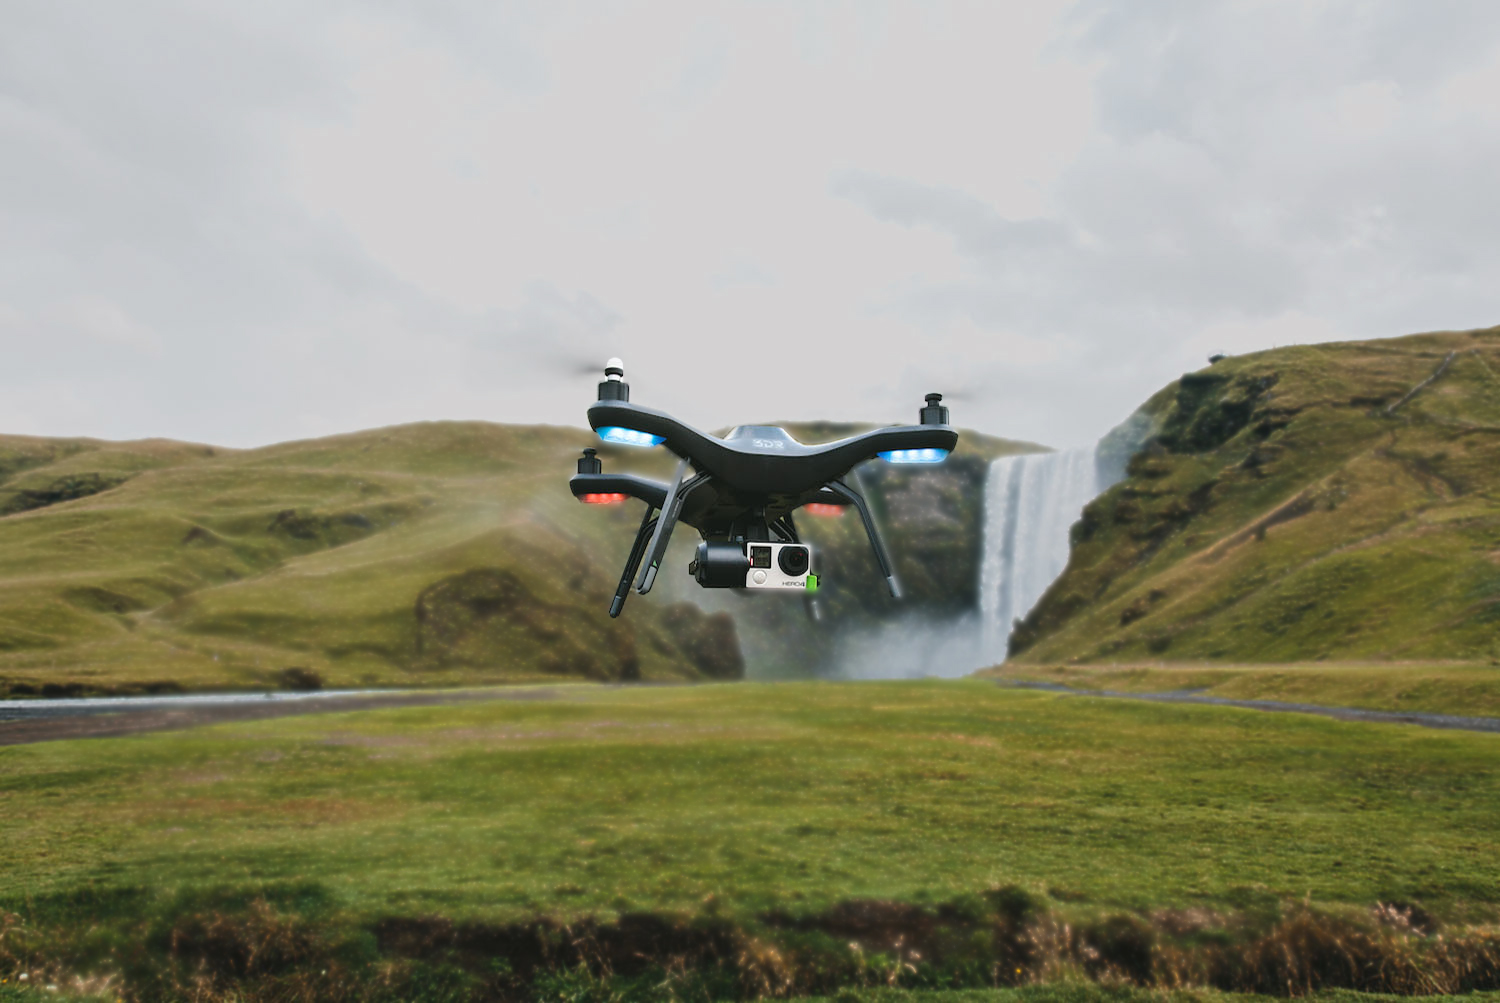 3DR Solo Drone Quadcopter Review – A Complete Guide